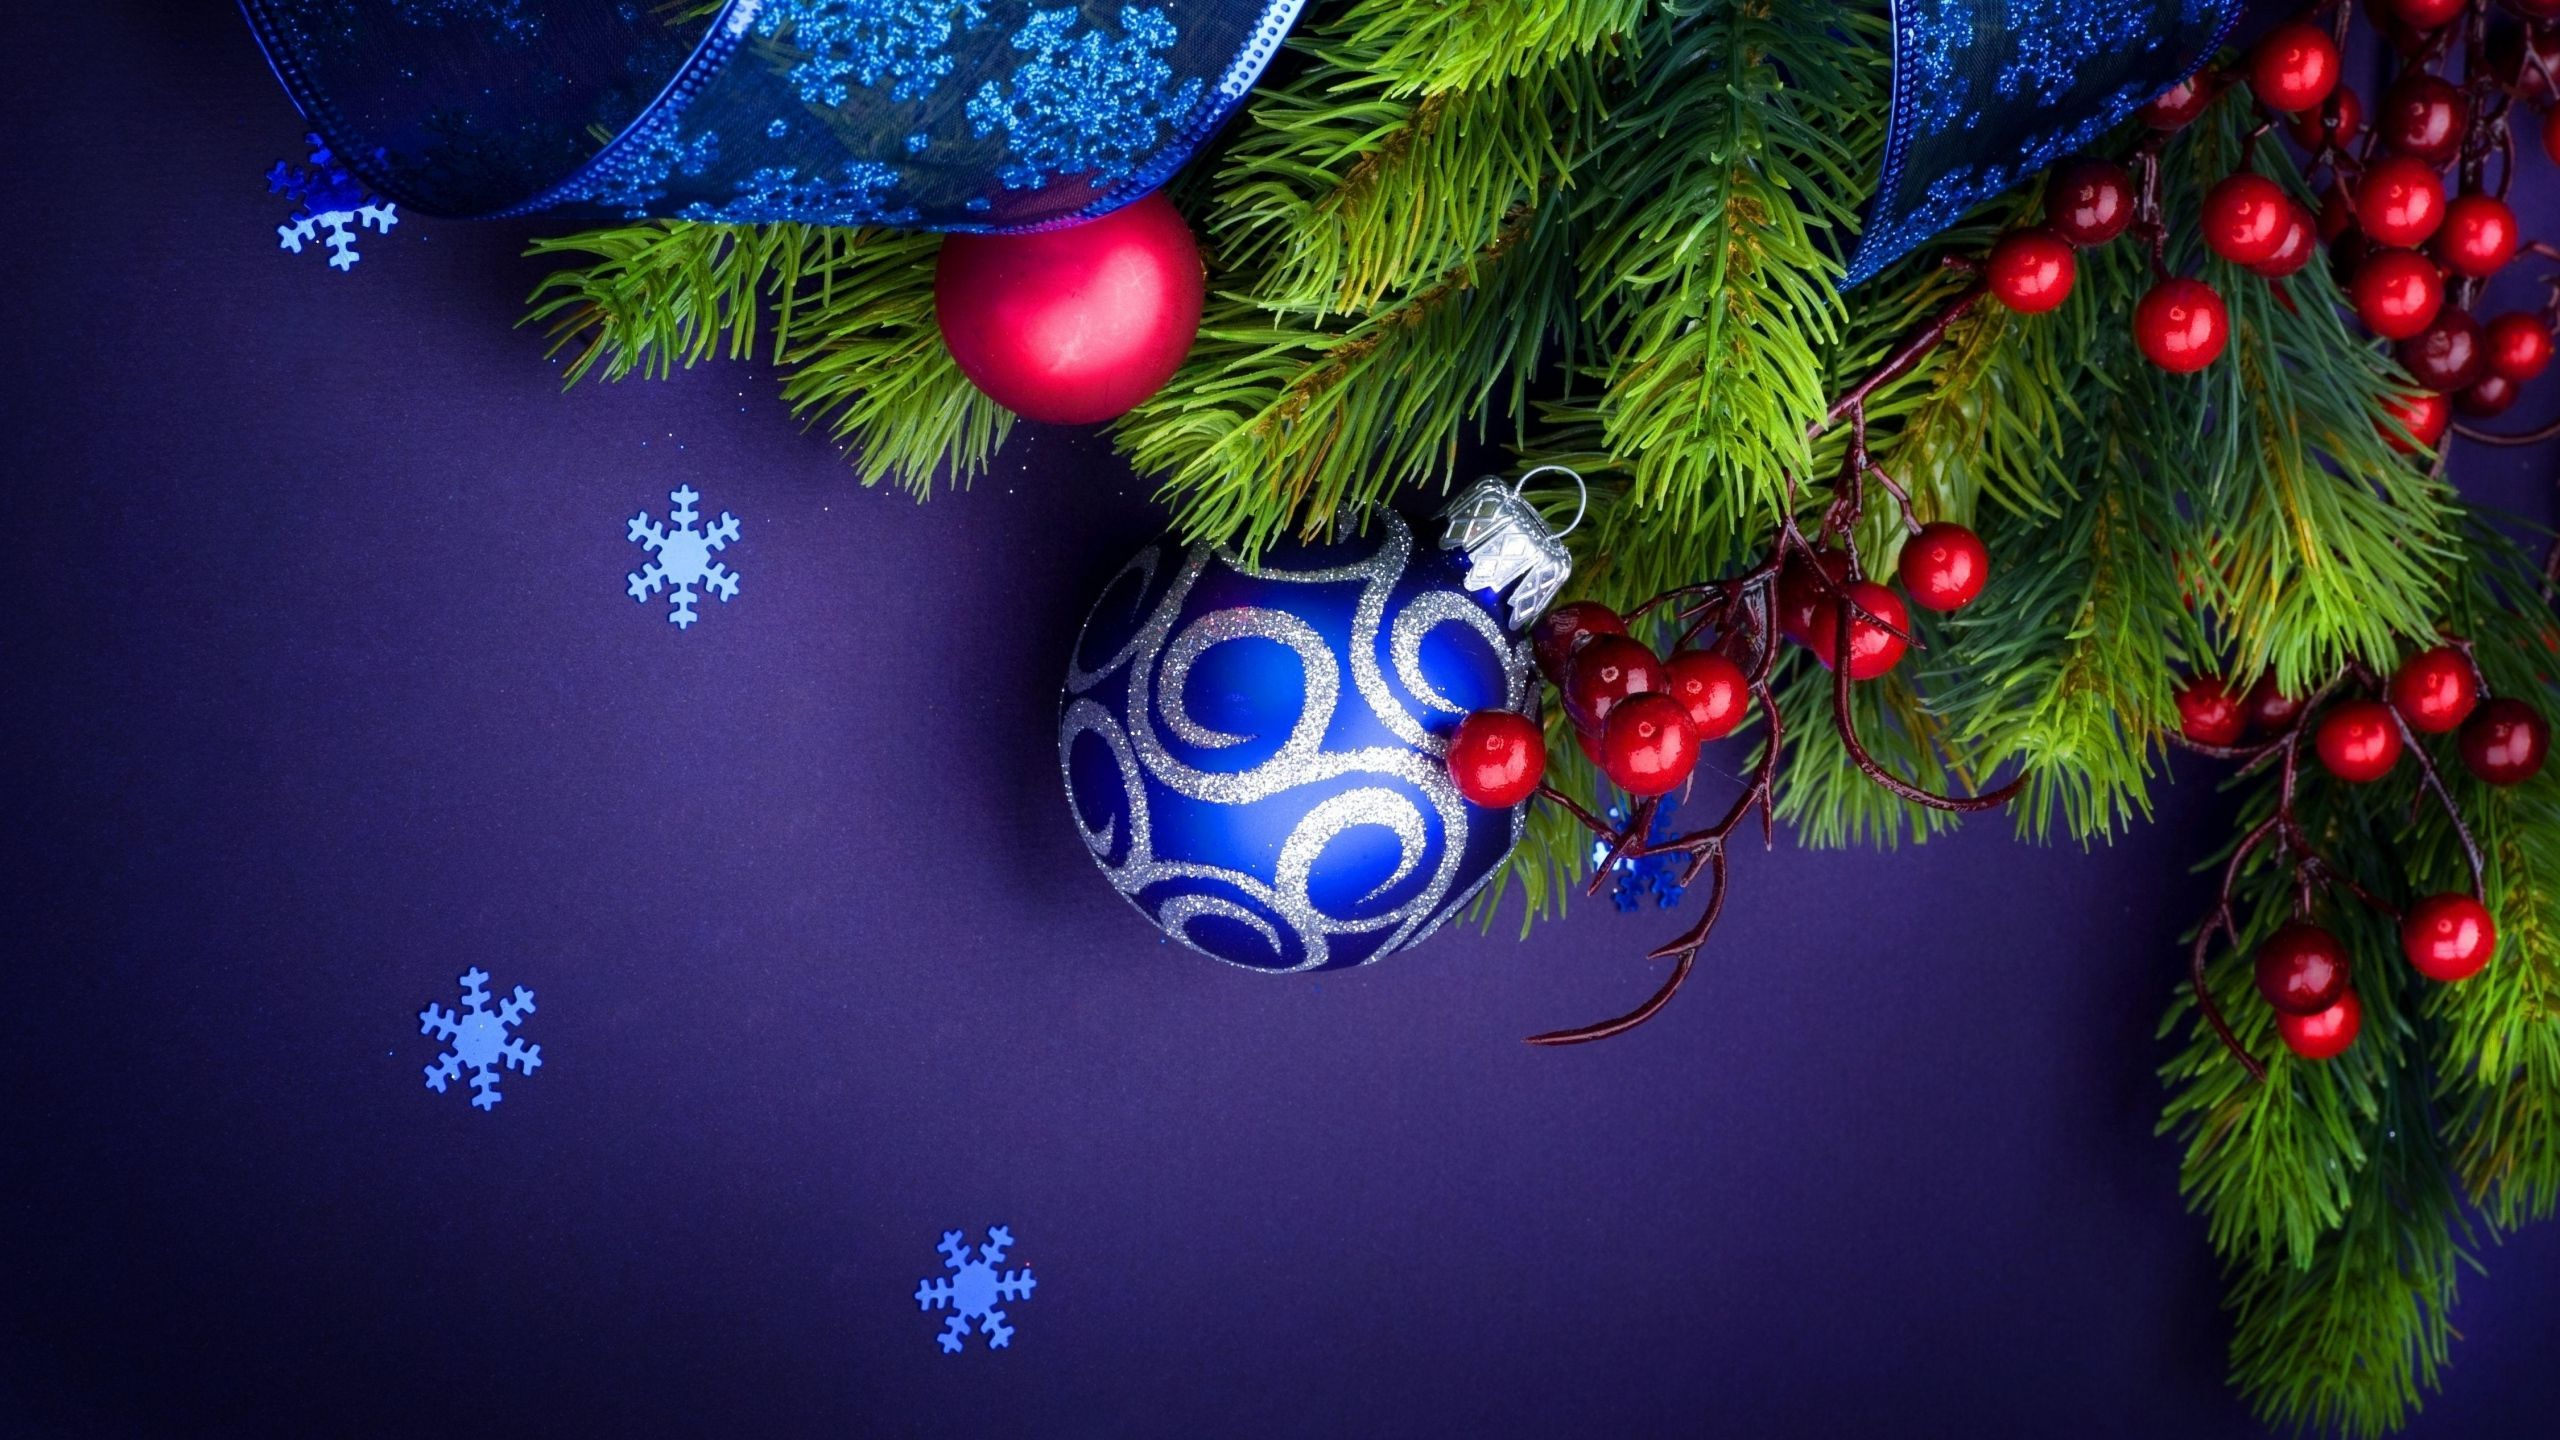 Christmas For Macbook Wallpapers Wallpaper Cave